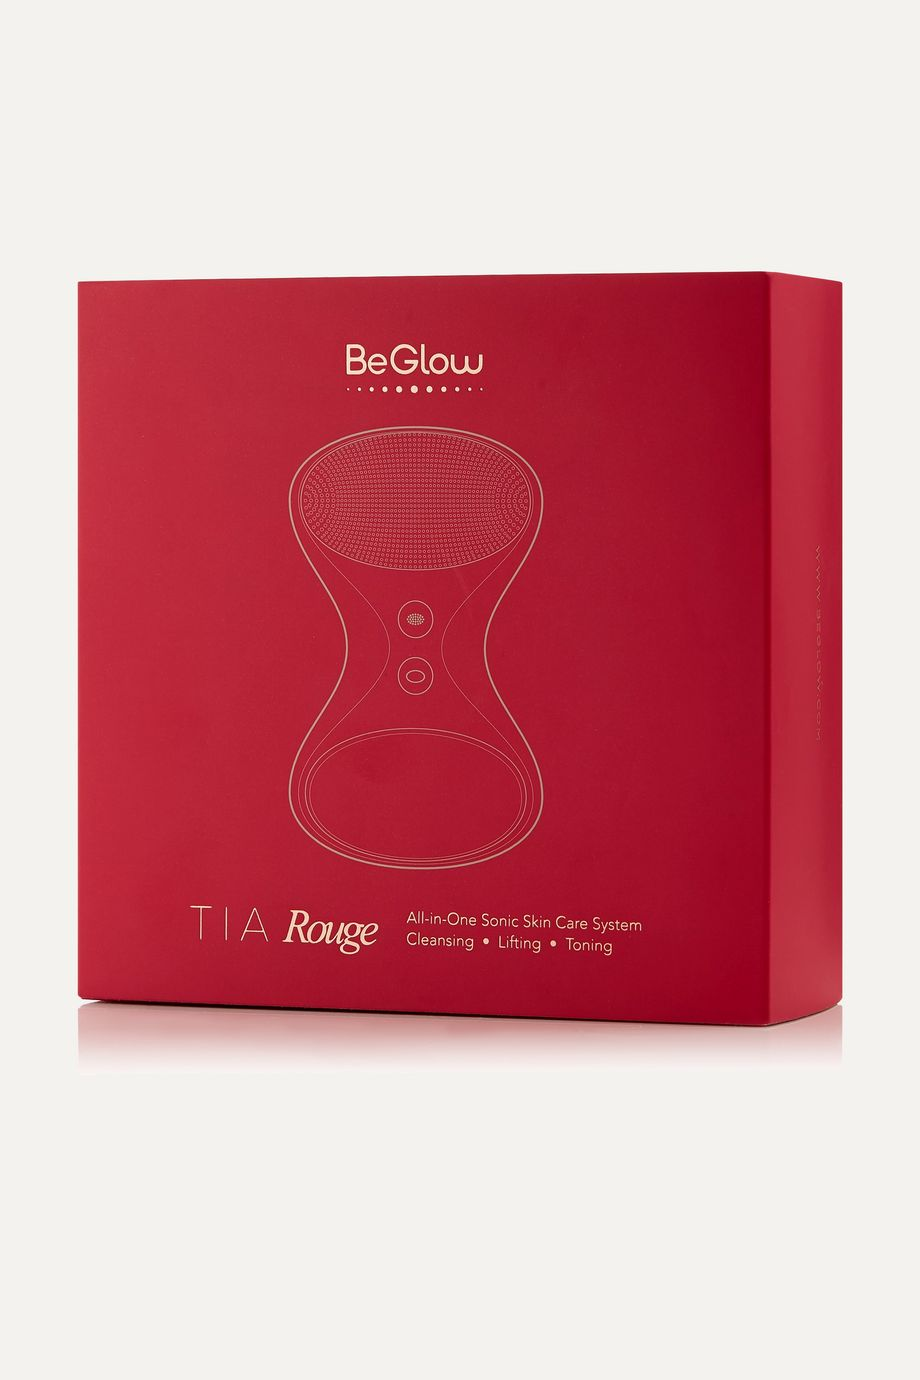 BeGlow Tia: All-in-One Sonic Skin Care System - Red